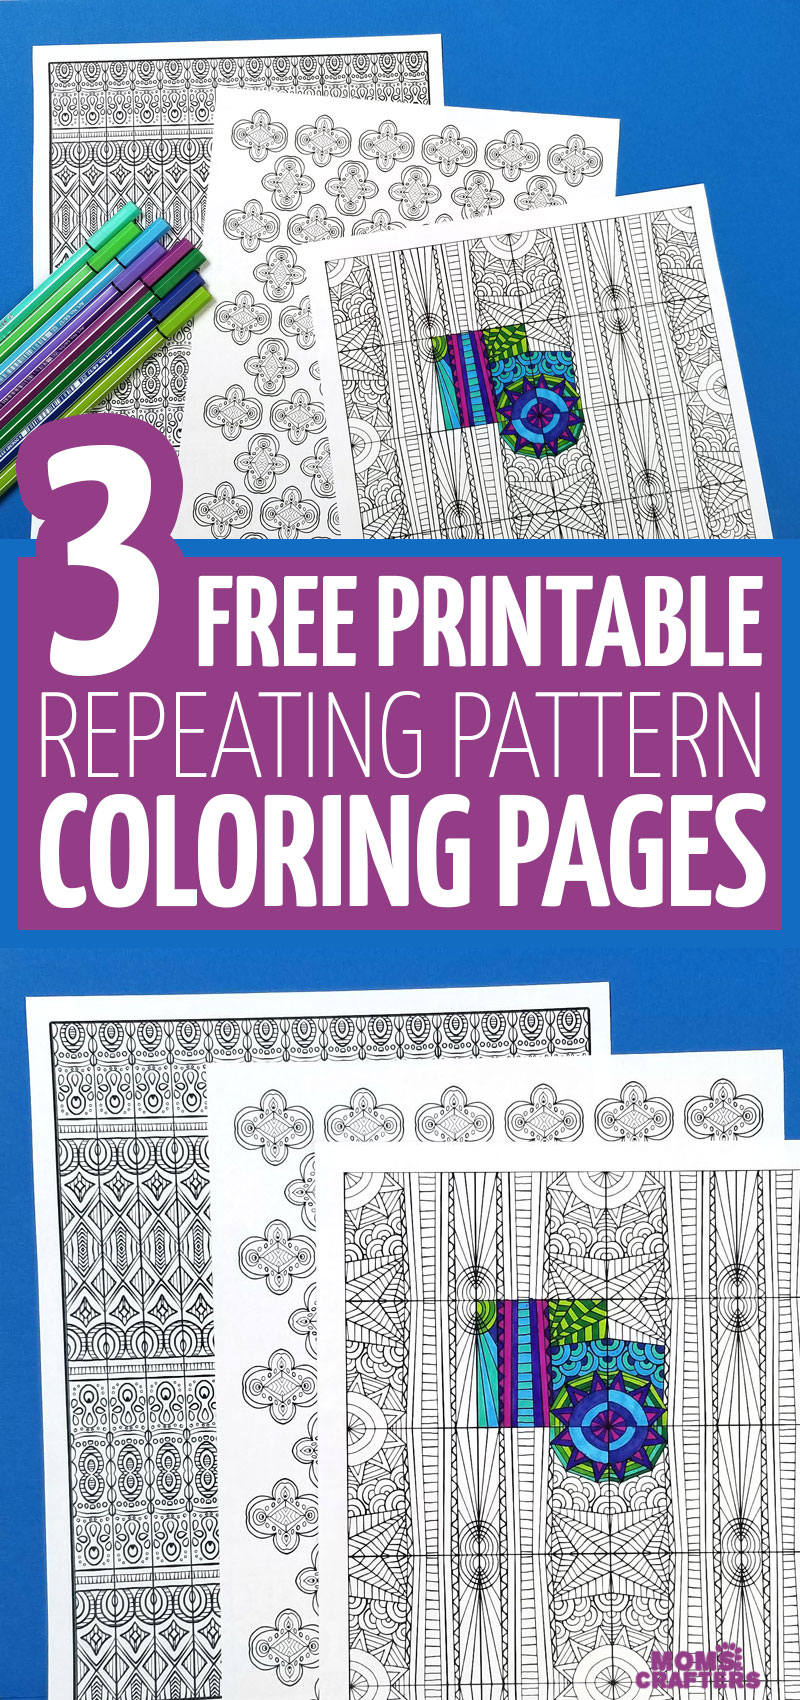 Click to download 3 free printable pattern coloring pages for adults and big kids - perfect for making coloring page crafts! This is a fun craft idea for teens and tweens on a budget, or for grown-ups.